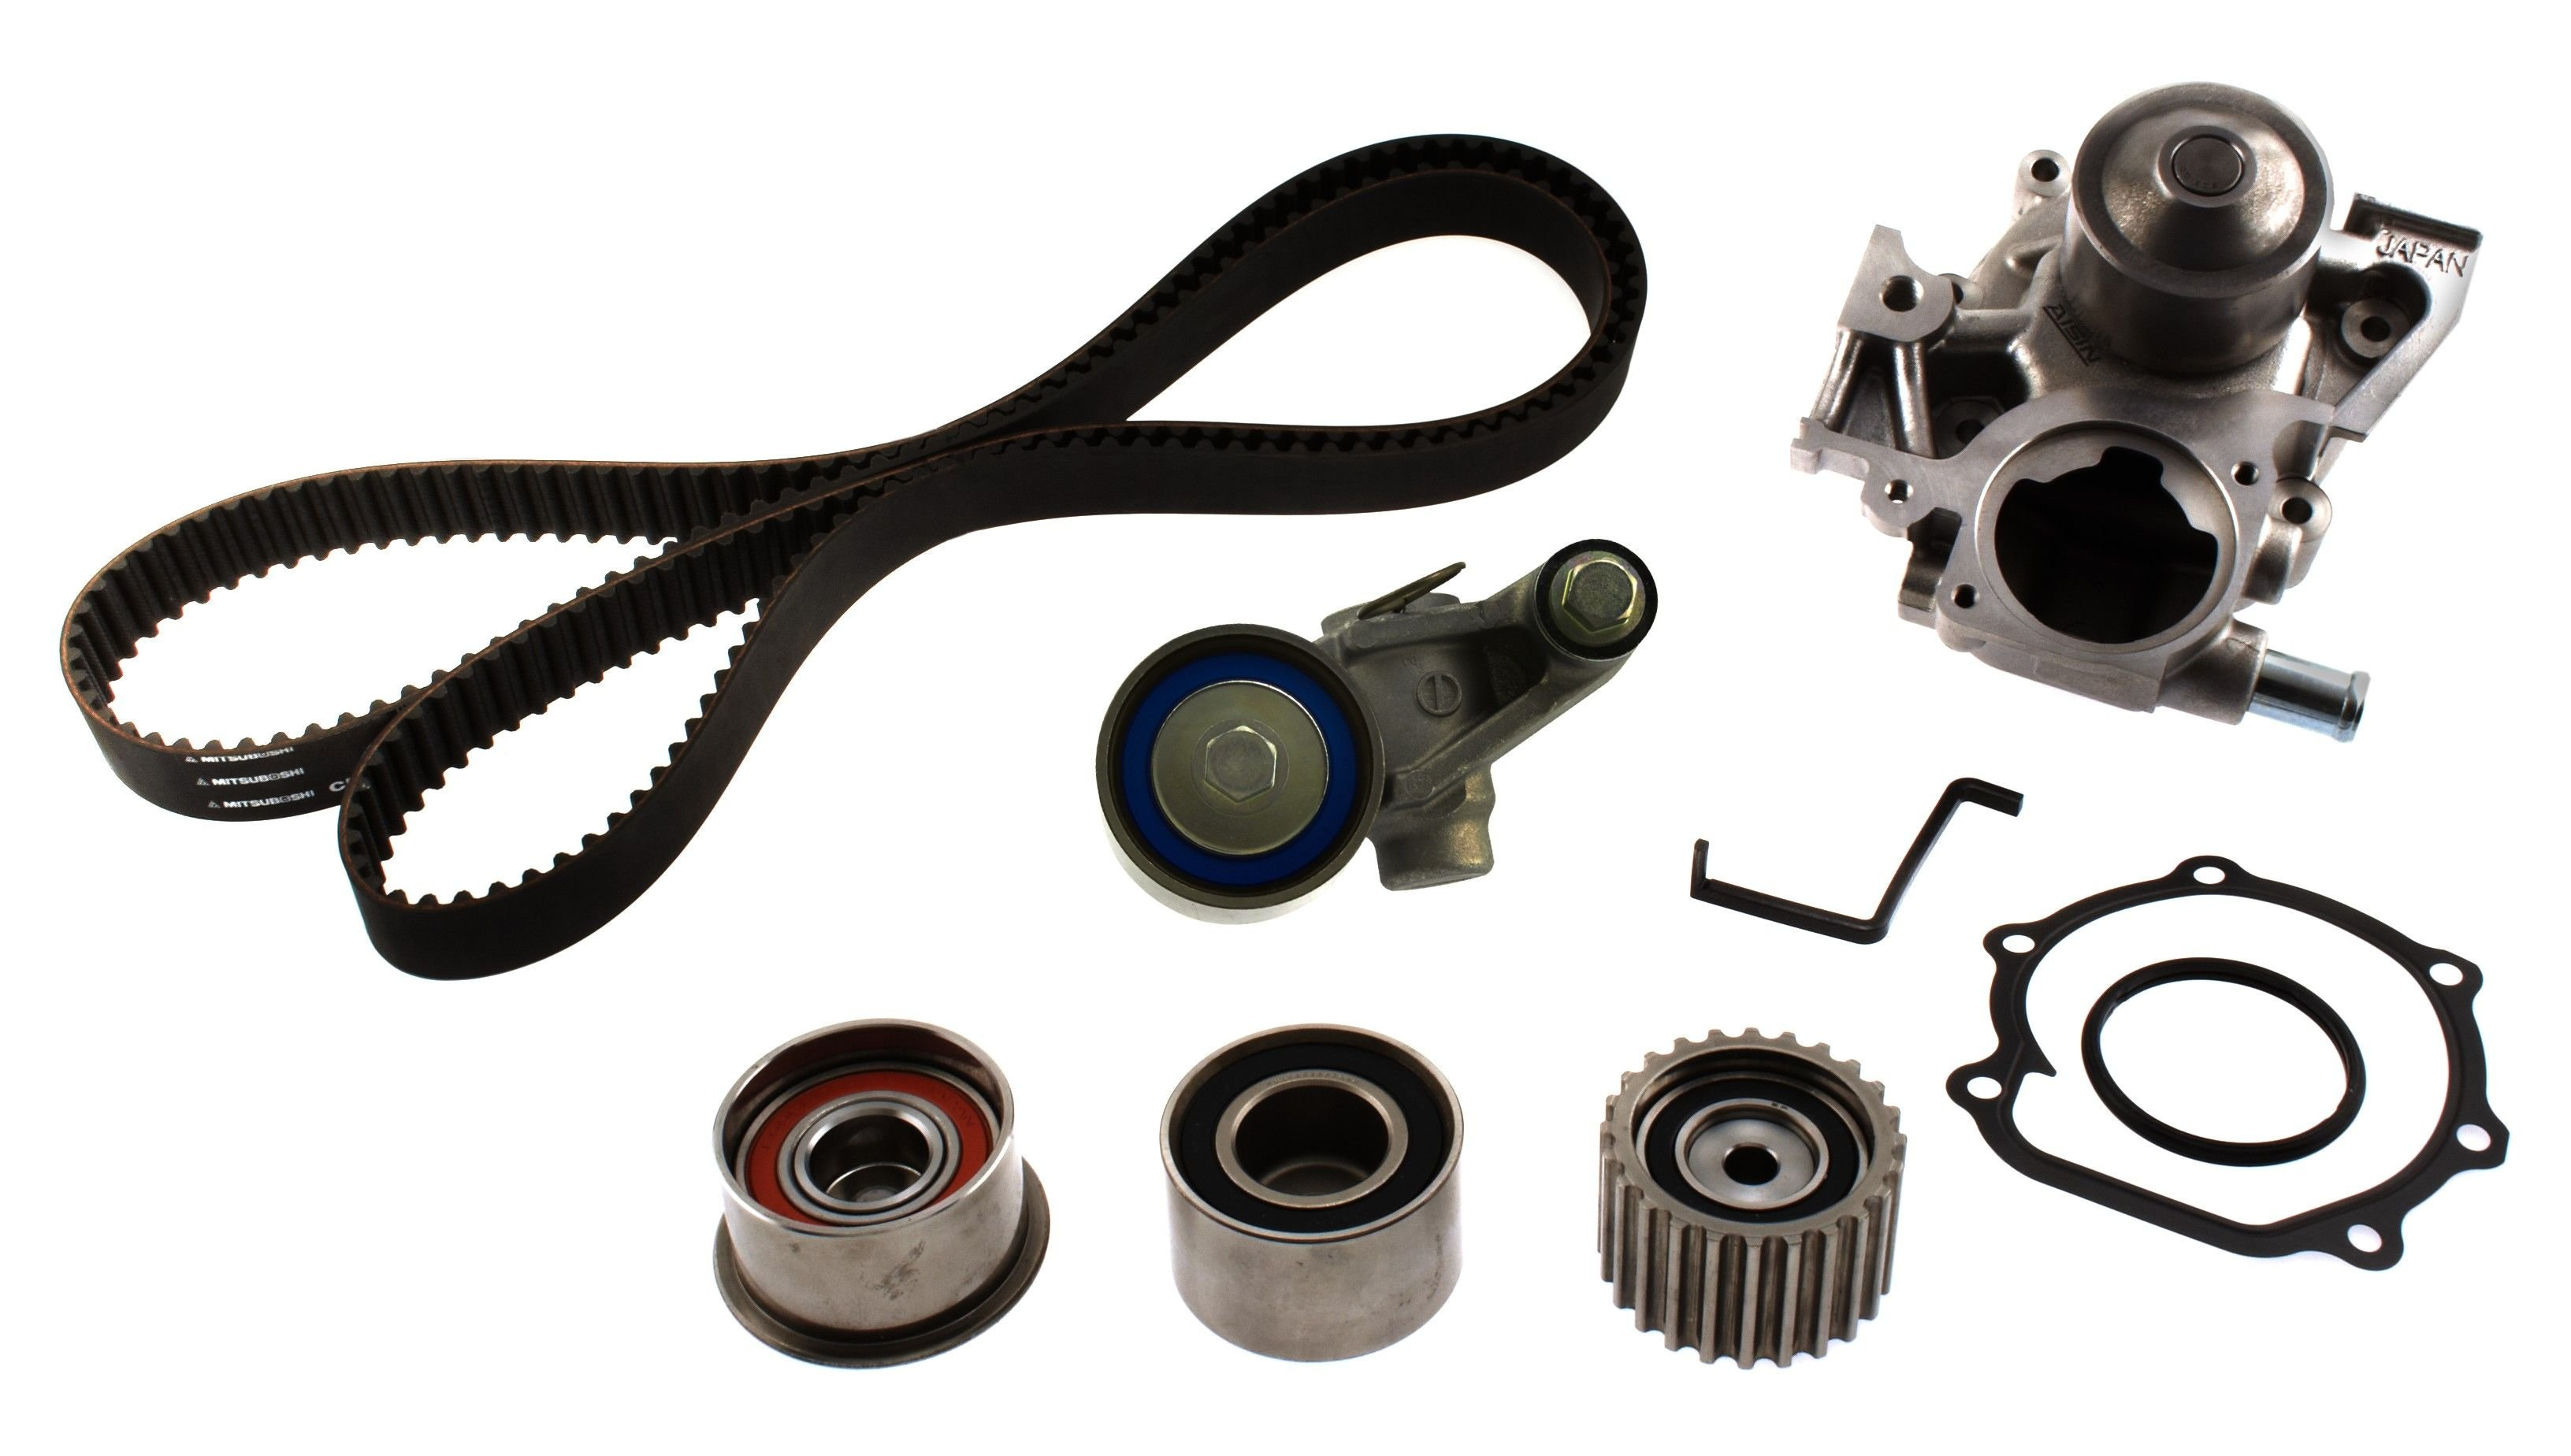 Subaru Legacy Engine Timing Belt Kit With Water Pump Replacement For 2010 4 Cyl 25l Aisin Tkf 006